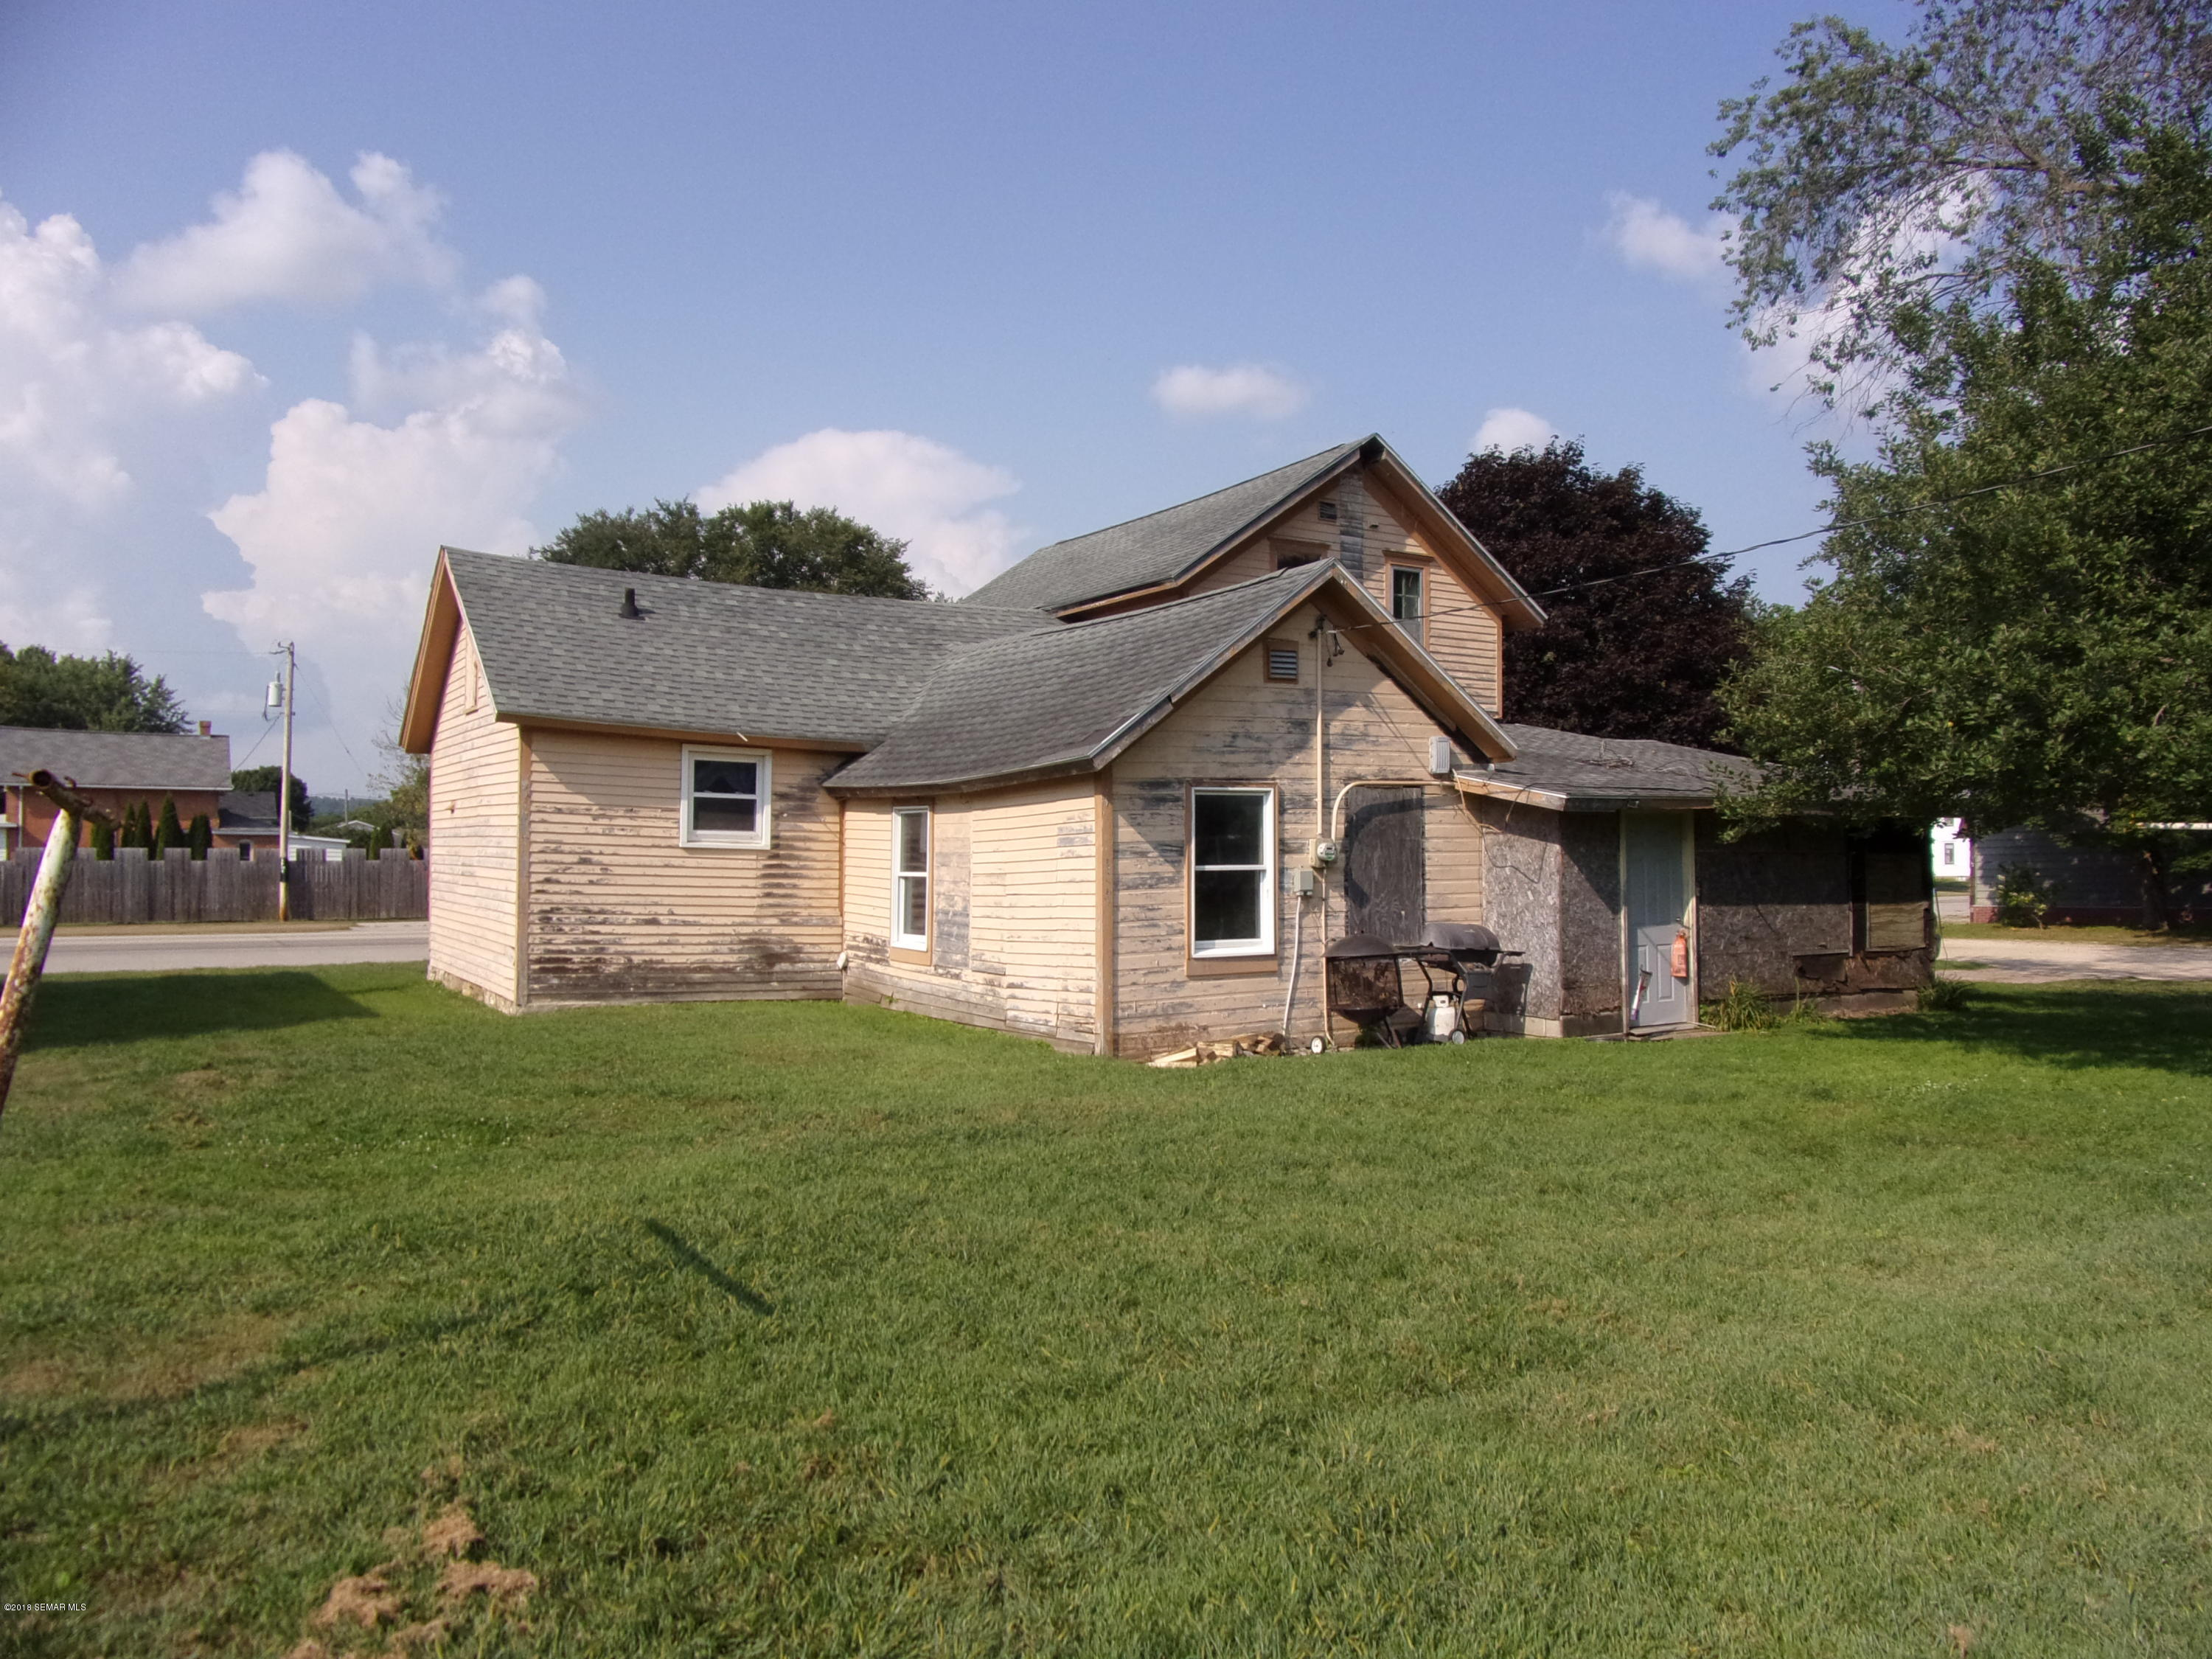 8140 E Main Street, Winona MN 55987 - Photo 2